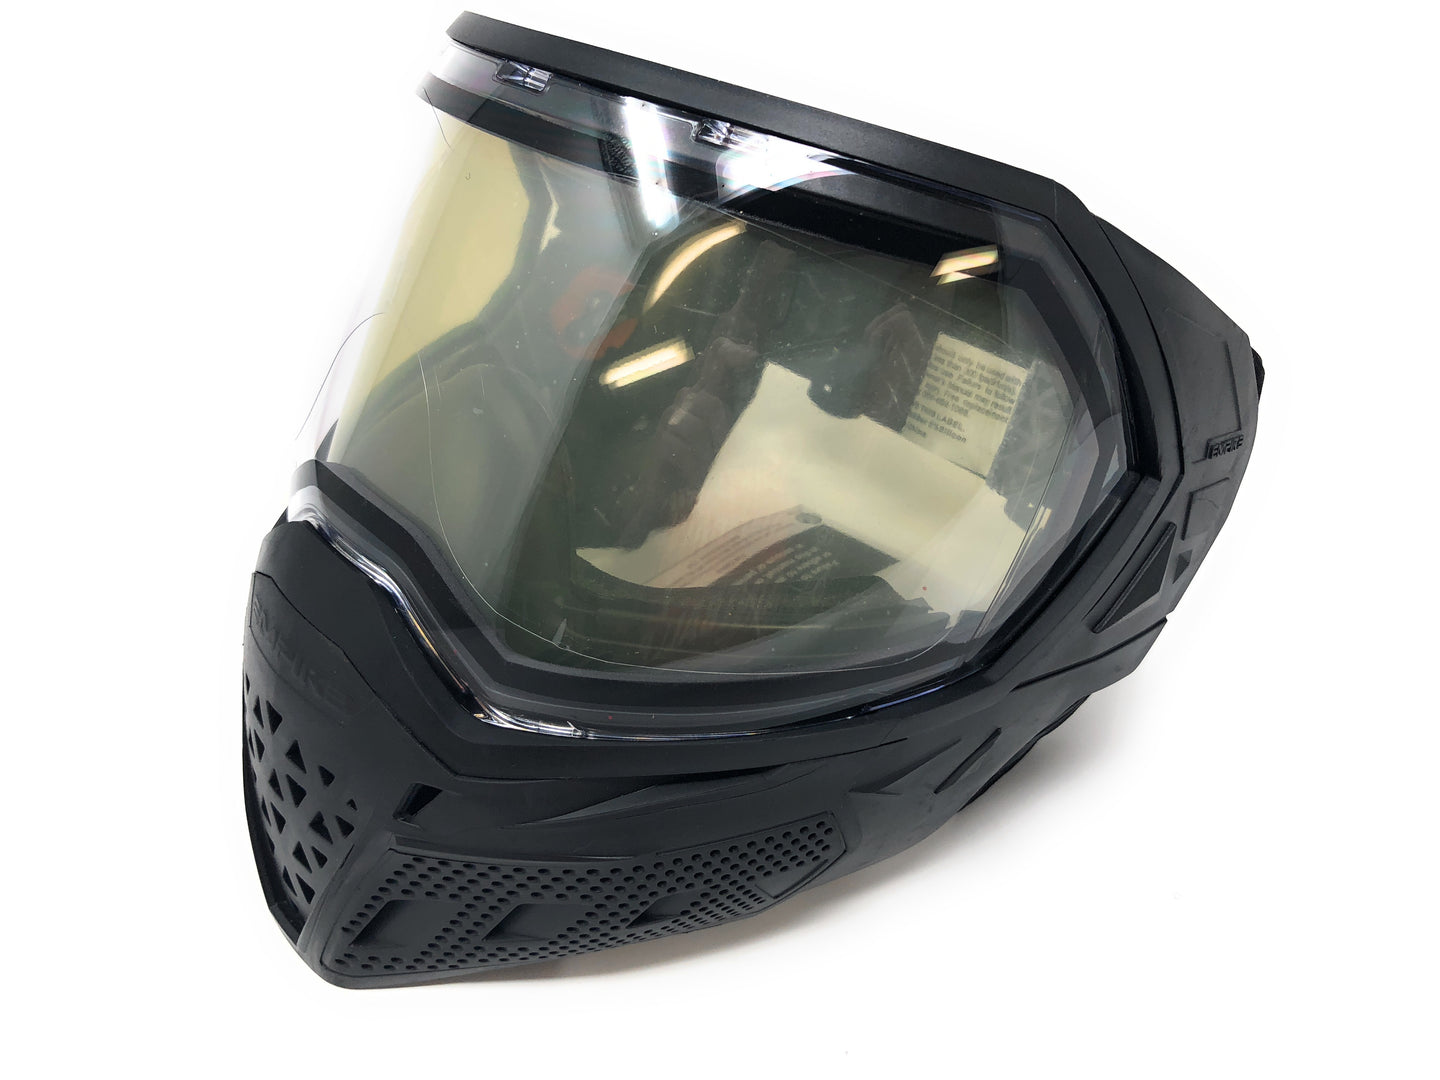 Photos of Empire EVS Paintball Goggles - Black. Photo taken by drpaintball.com